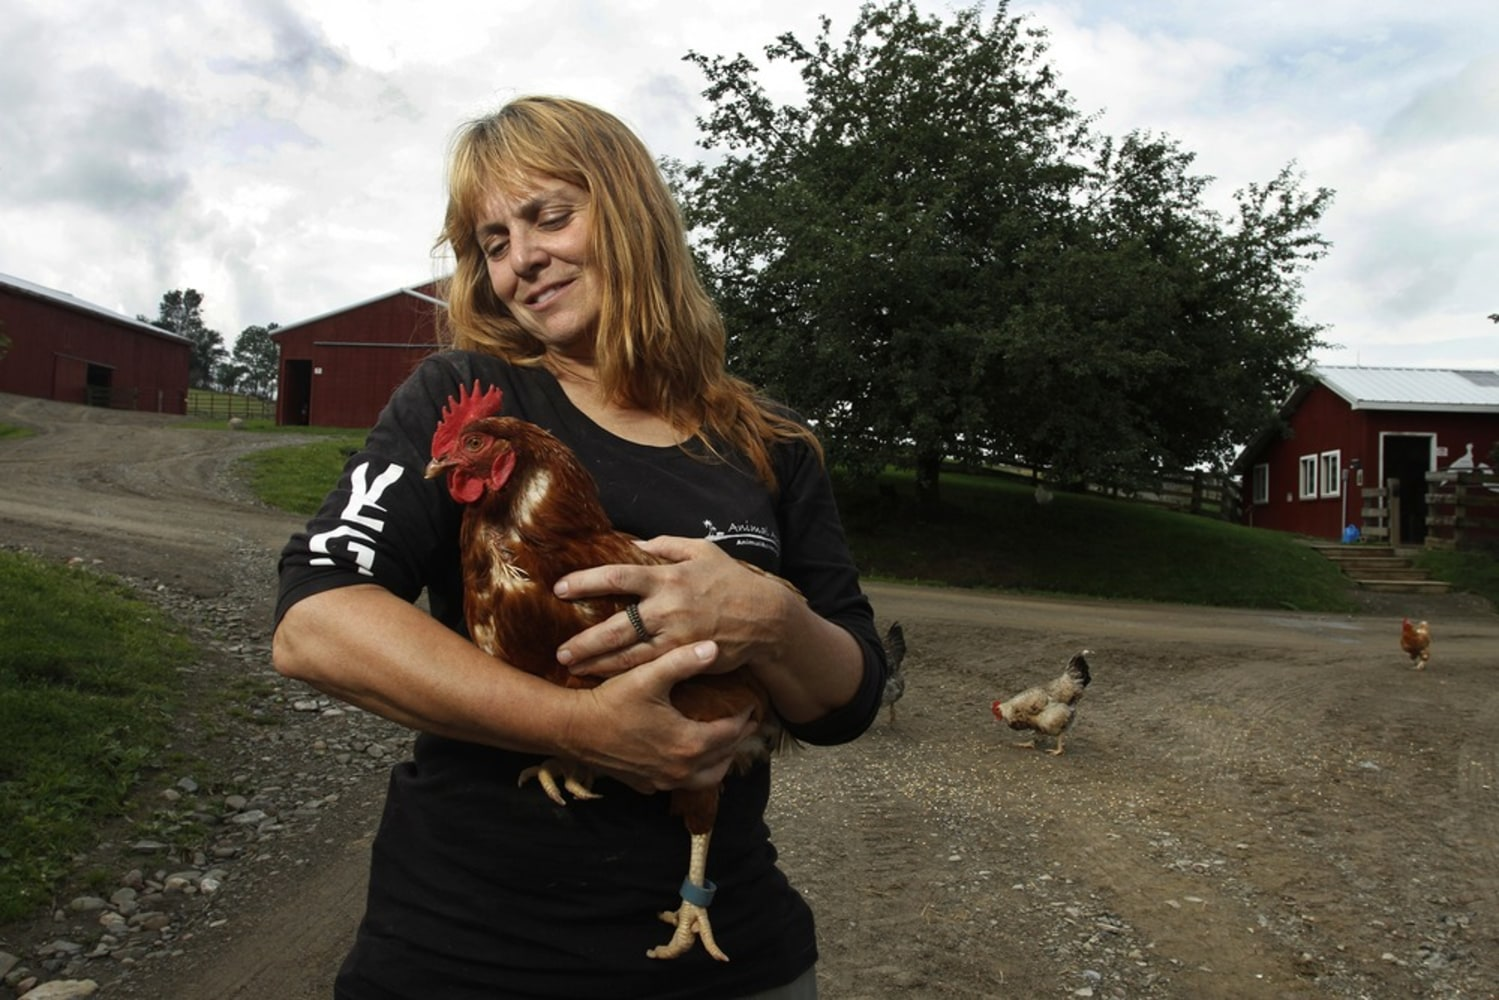 Hipster Backyard Chickens : Backyard chickens dumped at shelters when hipsters cant cope, critics